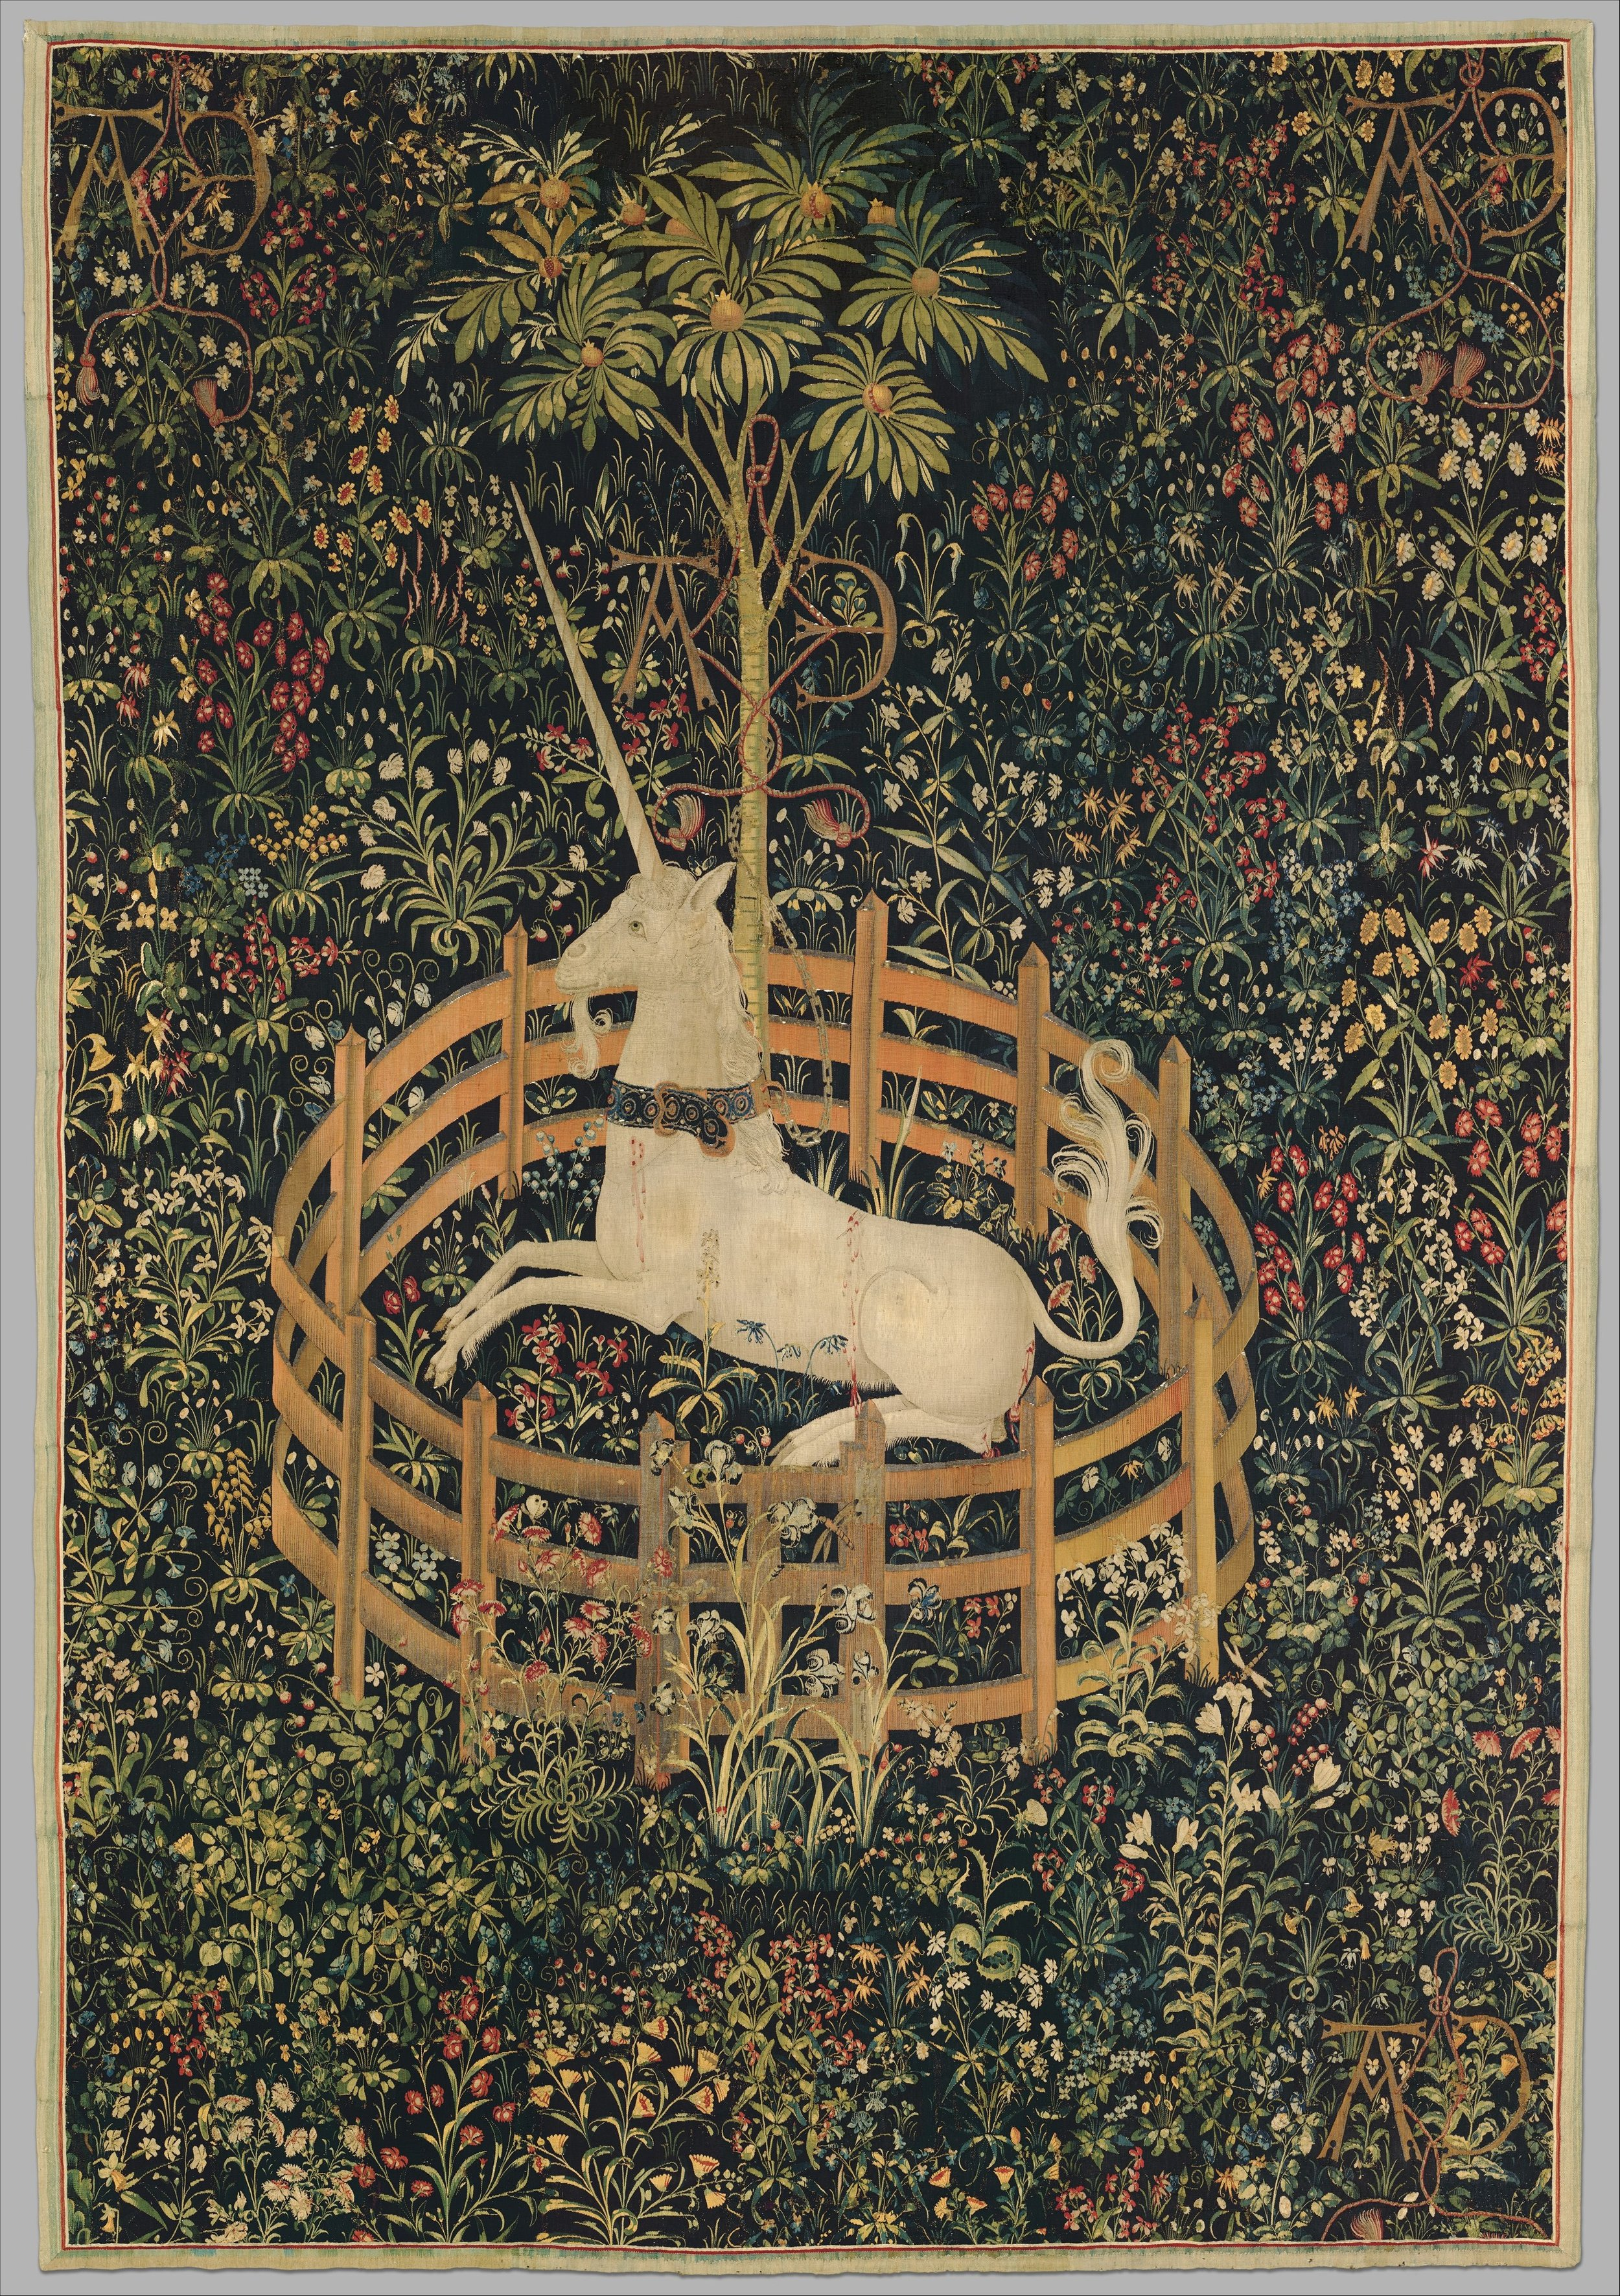 The Unicorn in Captivity. Part of The Unicorn Tapestries, which are amongst the most significant tapestries ever created.